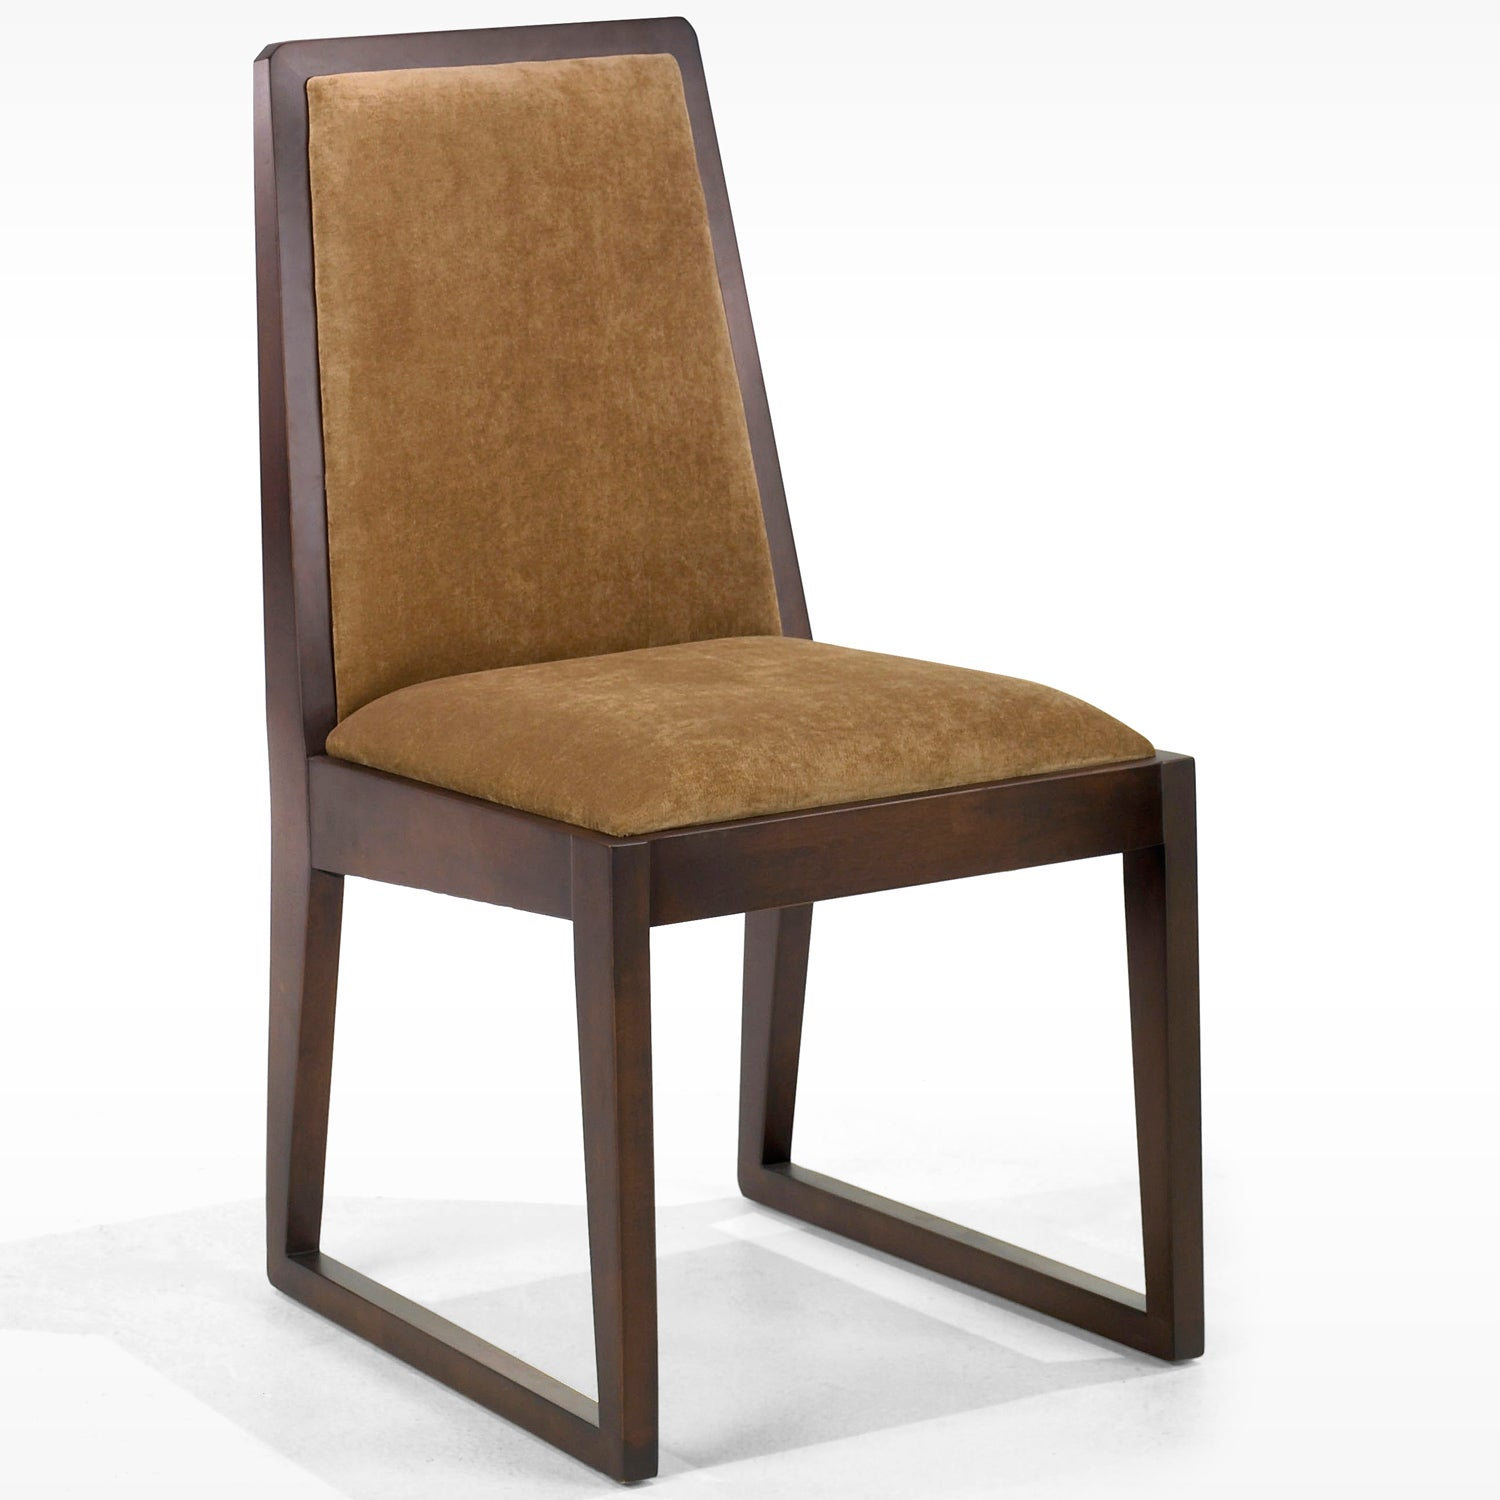 Bixby Tobacco Espresso Dining Chair (Set of 2)